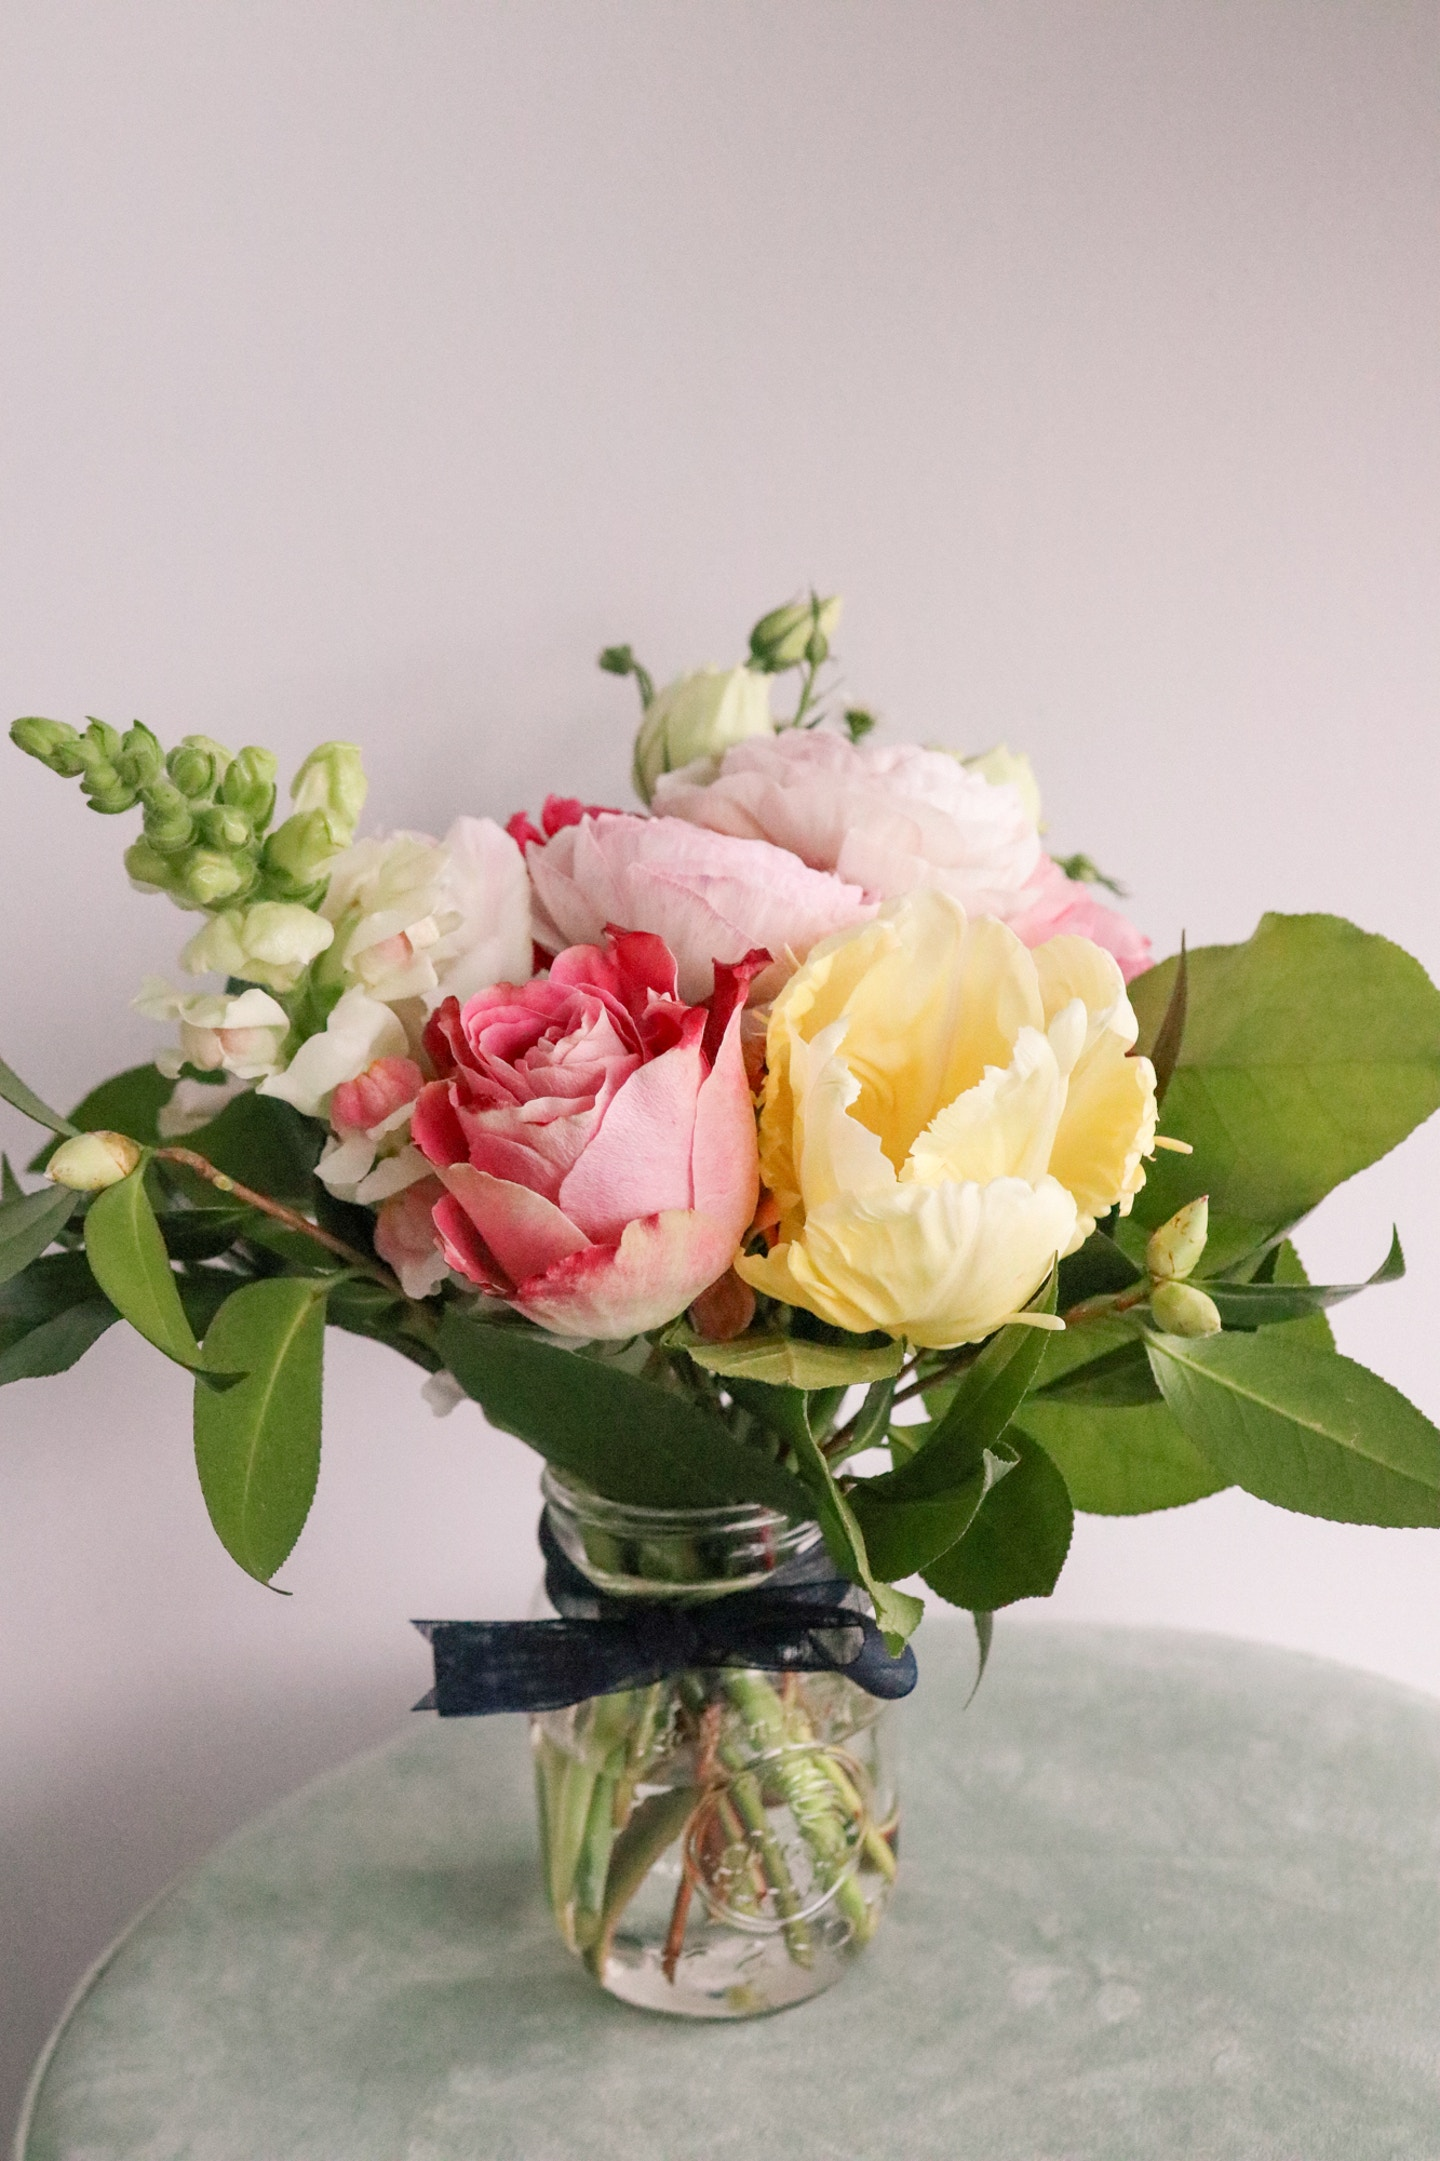 Mother's Day Gift Ideas: get her a floral subscription from a local florist. In Toronto, I love Brave Blooms which offer 3, 6 and 12 month subscriptions 1x or 2x per month!